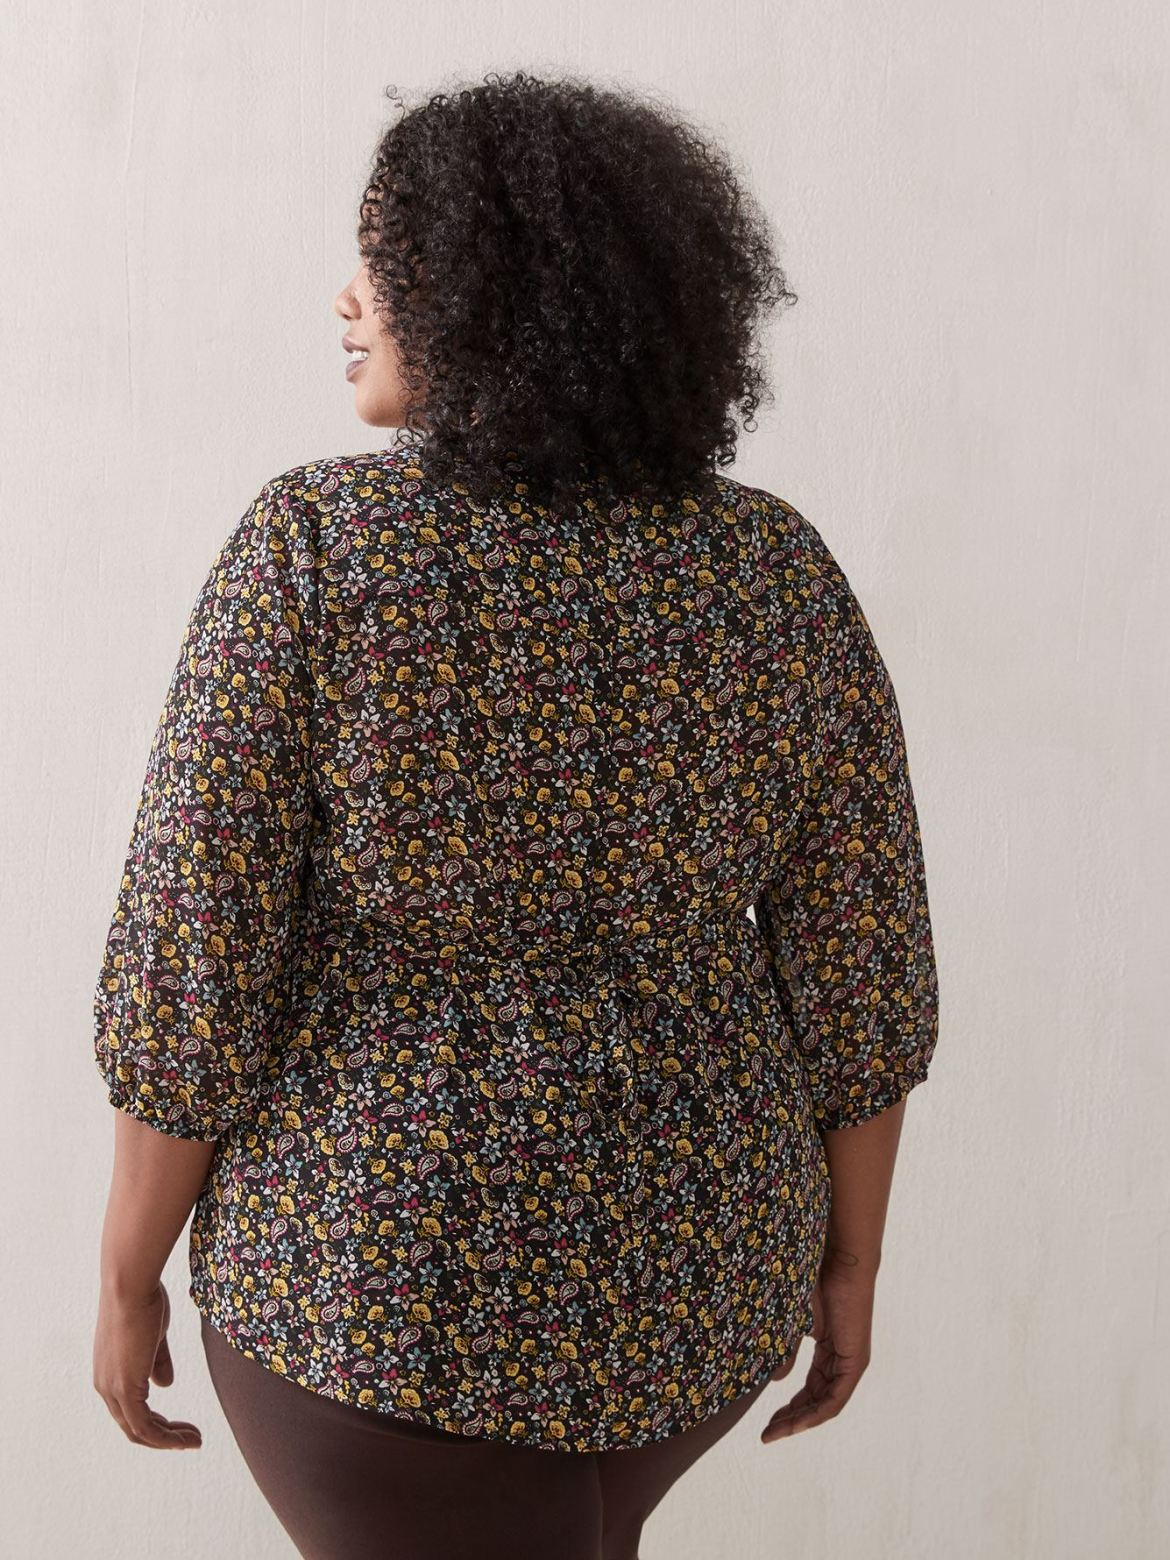 Printed Chiffon Pin-Tuck Blouse - In Every Story